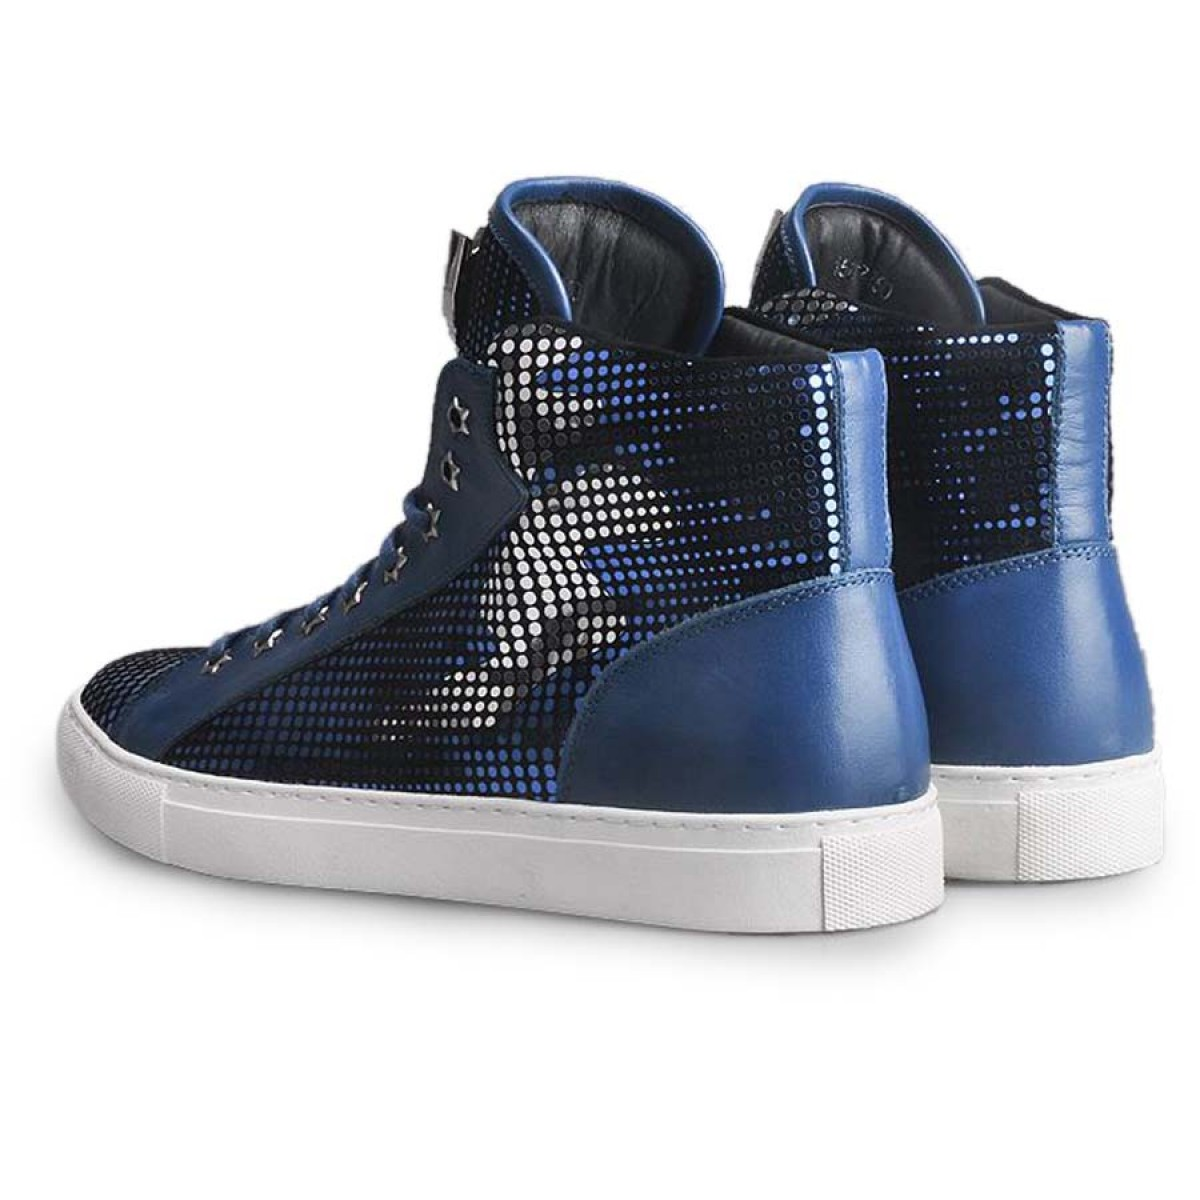 High Top Sneaker Sequins Grunge Shoe Leather Blue LATICCI